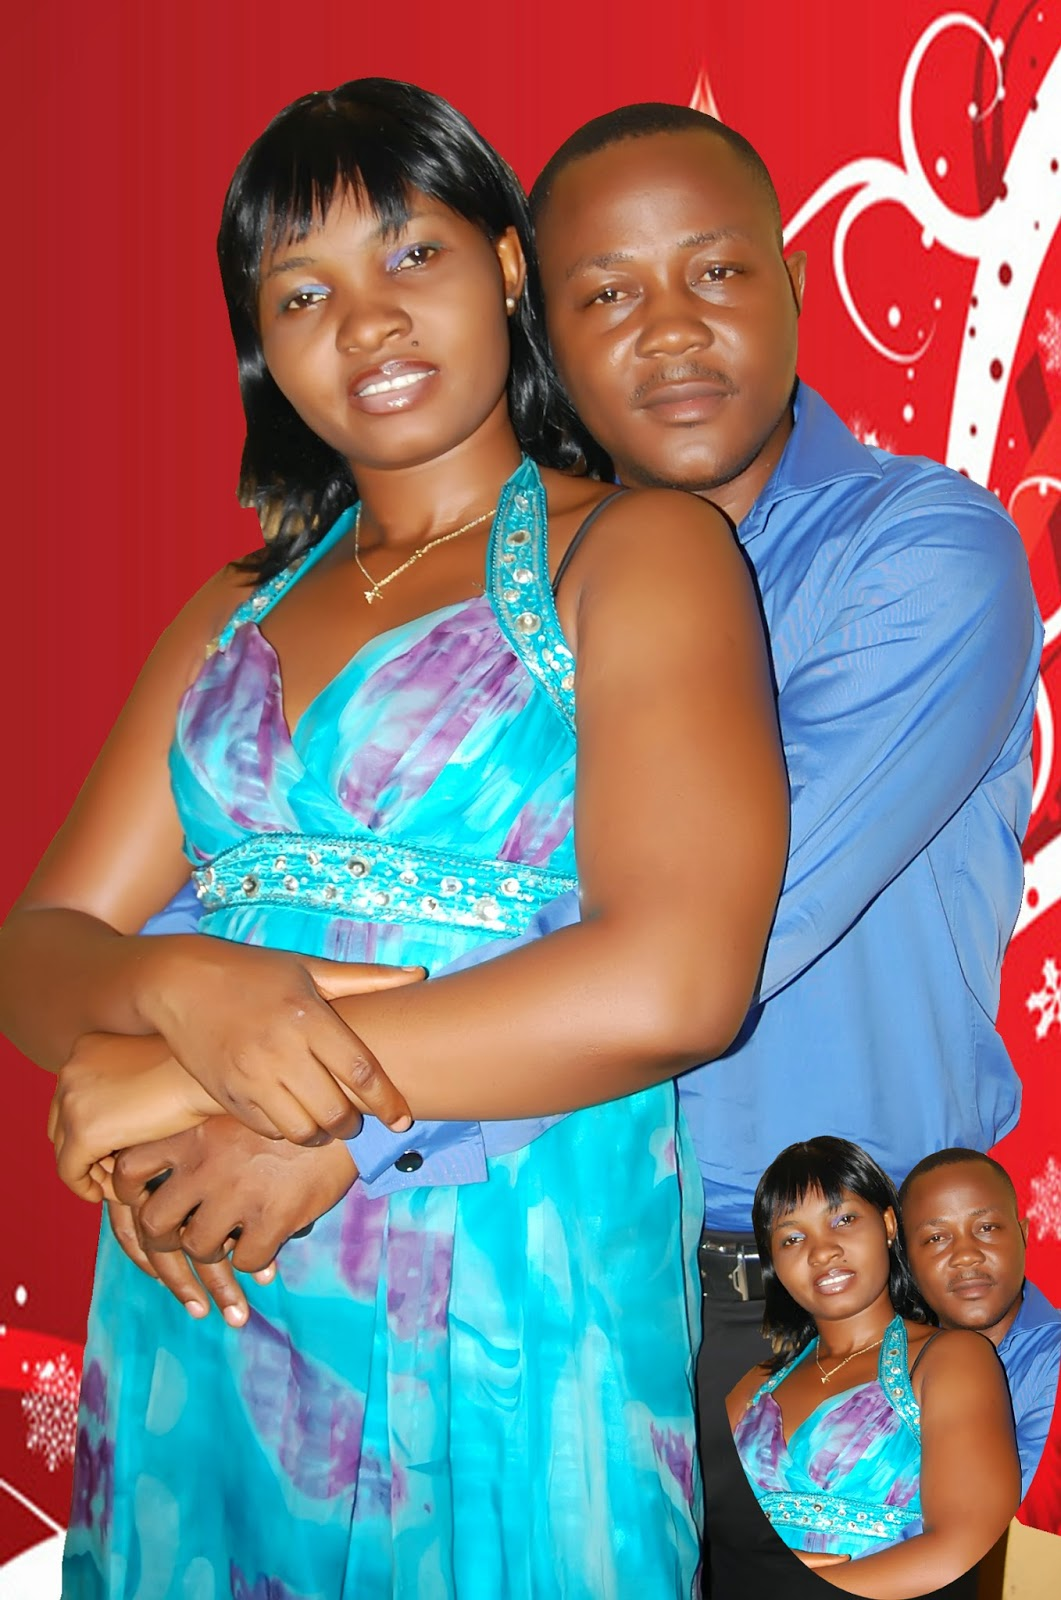 chomie and dinma wedding anniversary